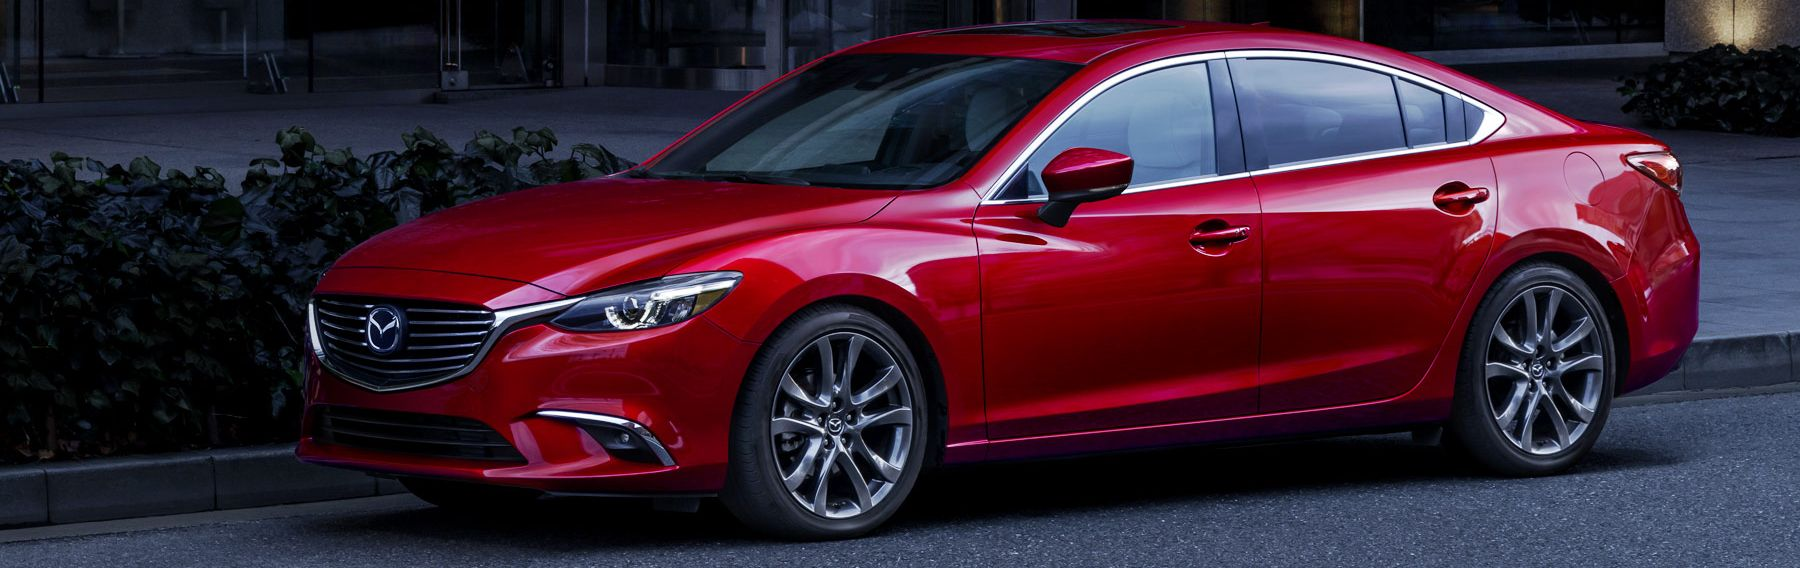 Mazda 3 Service Manual: Lighting System Personalization Features Setting Procedure